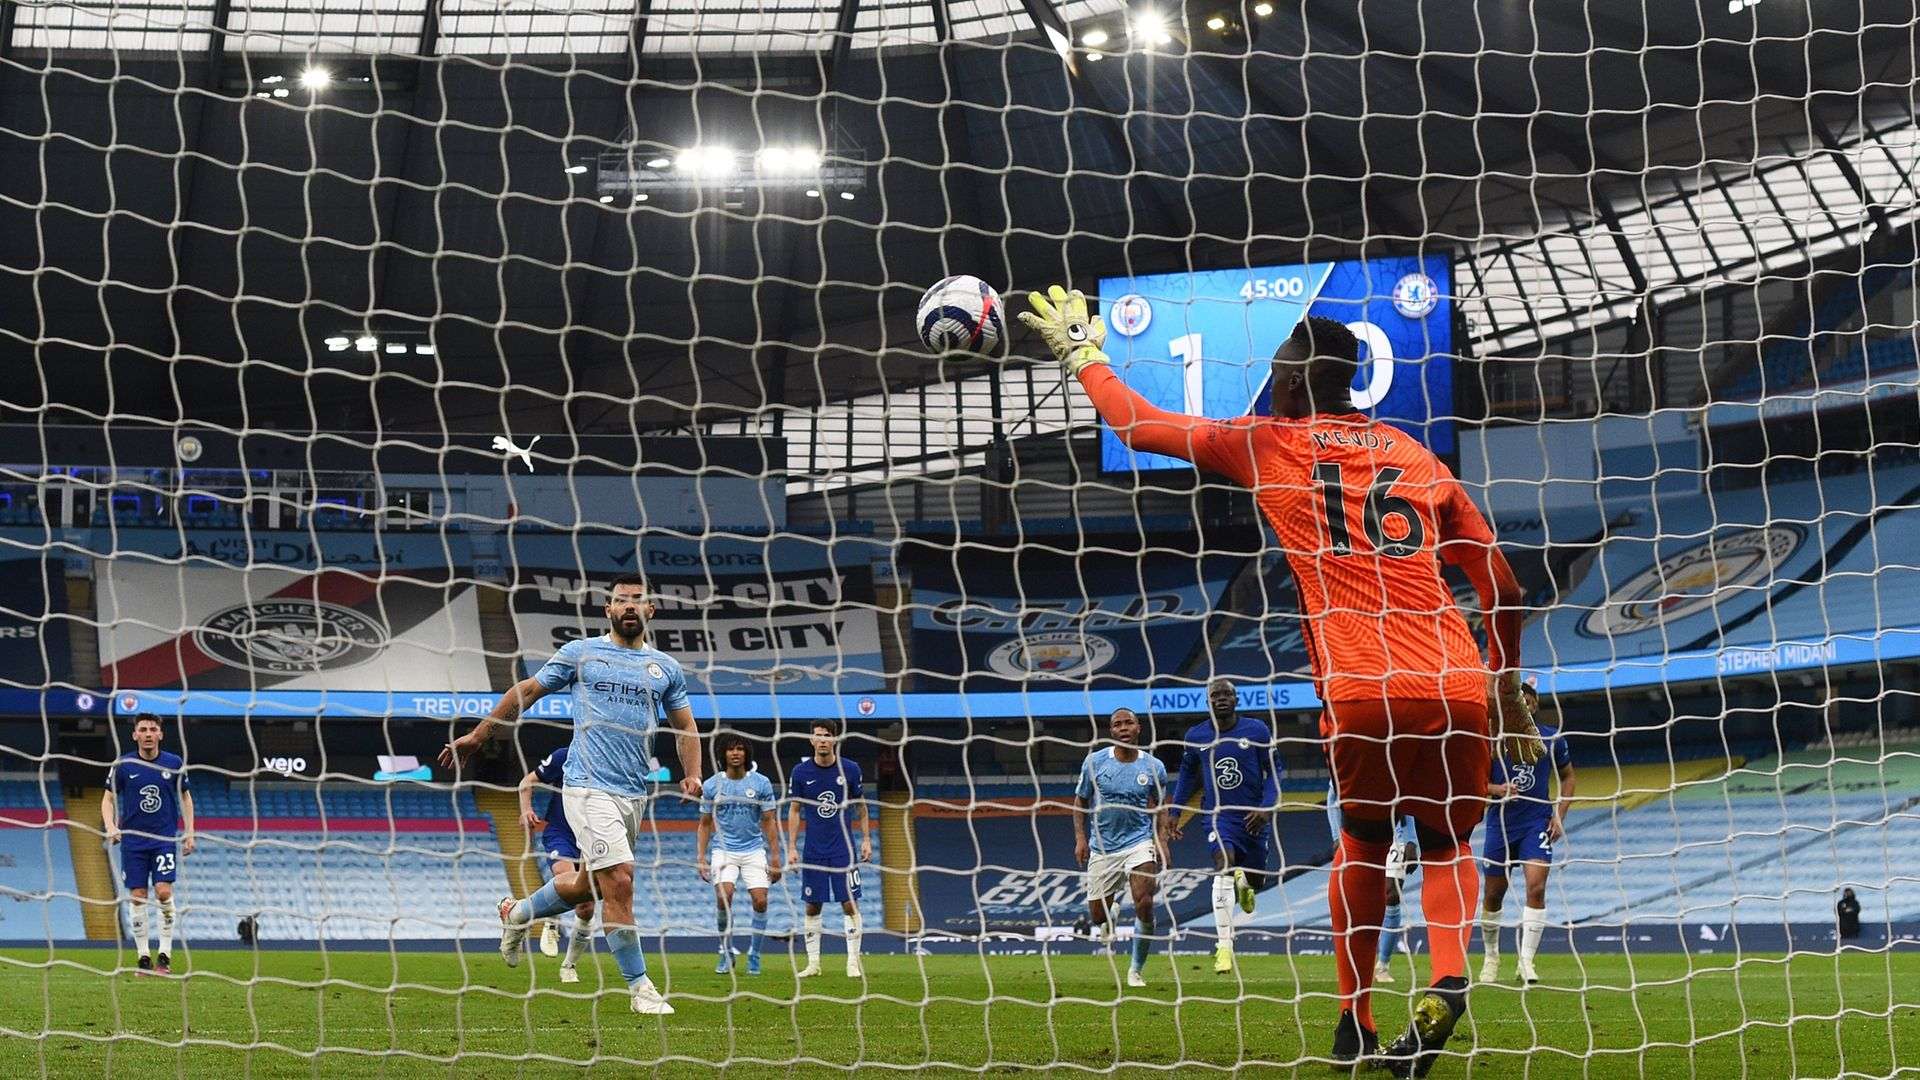 Edouard Mendy of Chelsea saves a penalty taken by Sergio Aguero of Manchester City during a Premier League match - Credit: Getty Images